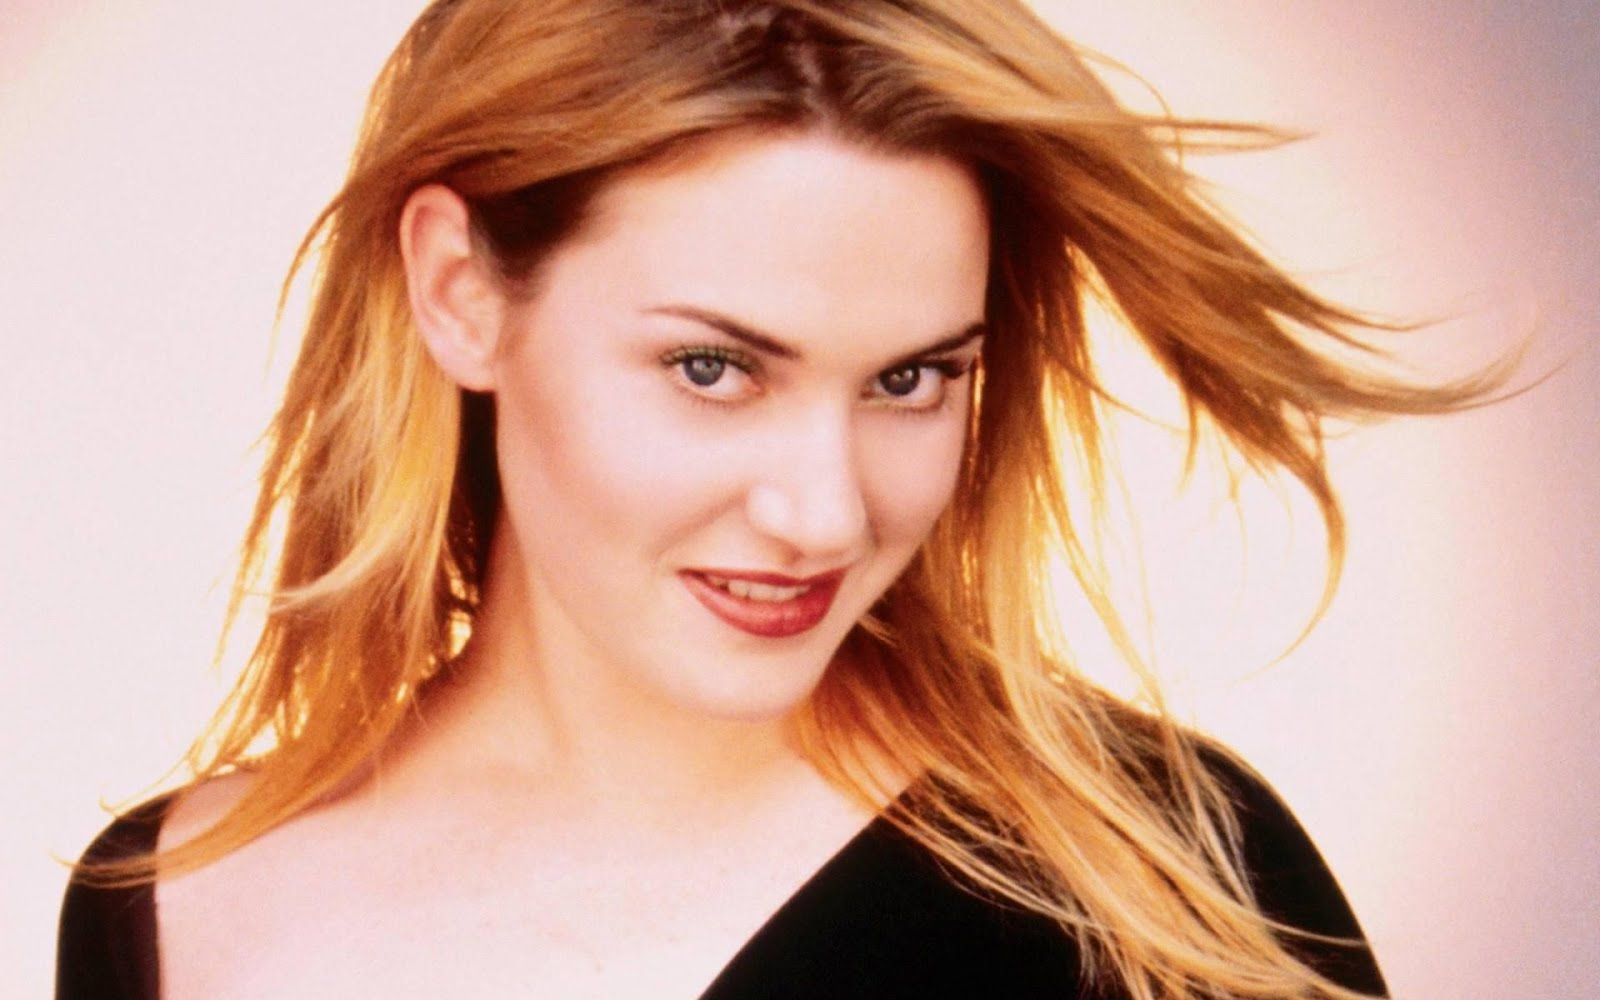 titanic heroine kate winslet hd images - movieactressphoto.blogspot.in